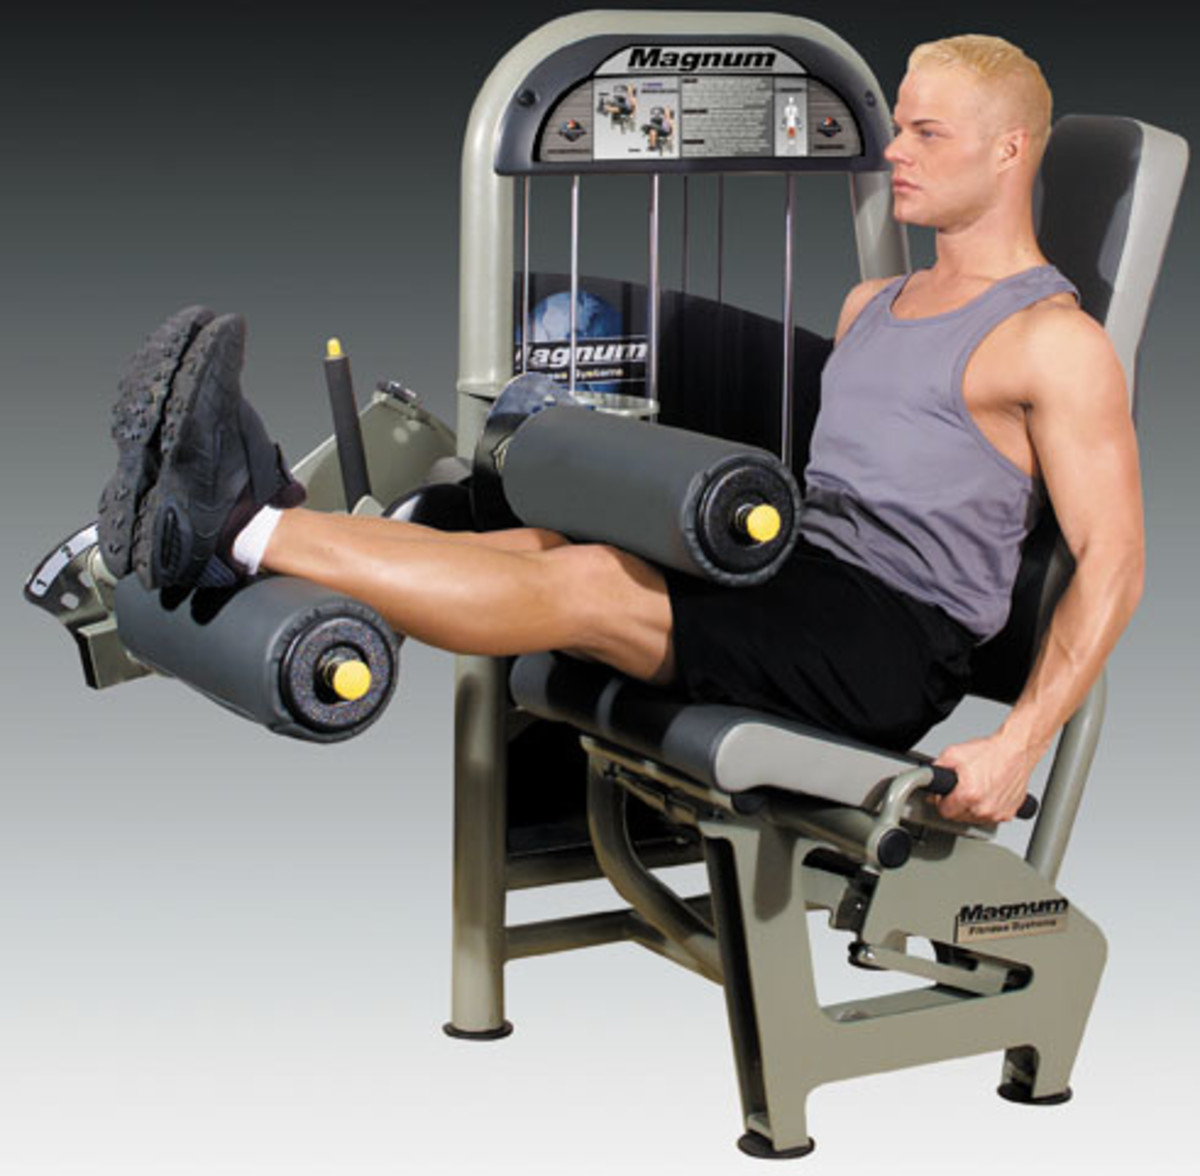 Leg Fitness Exercises on Equipment: Roman Chair, Leg Curls and Squats